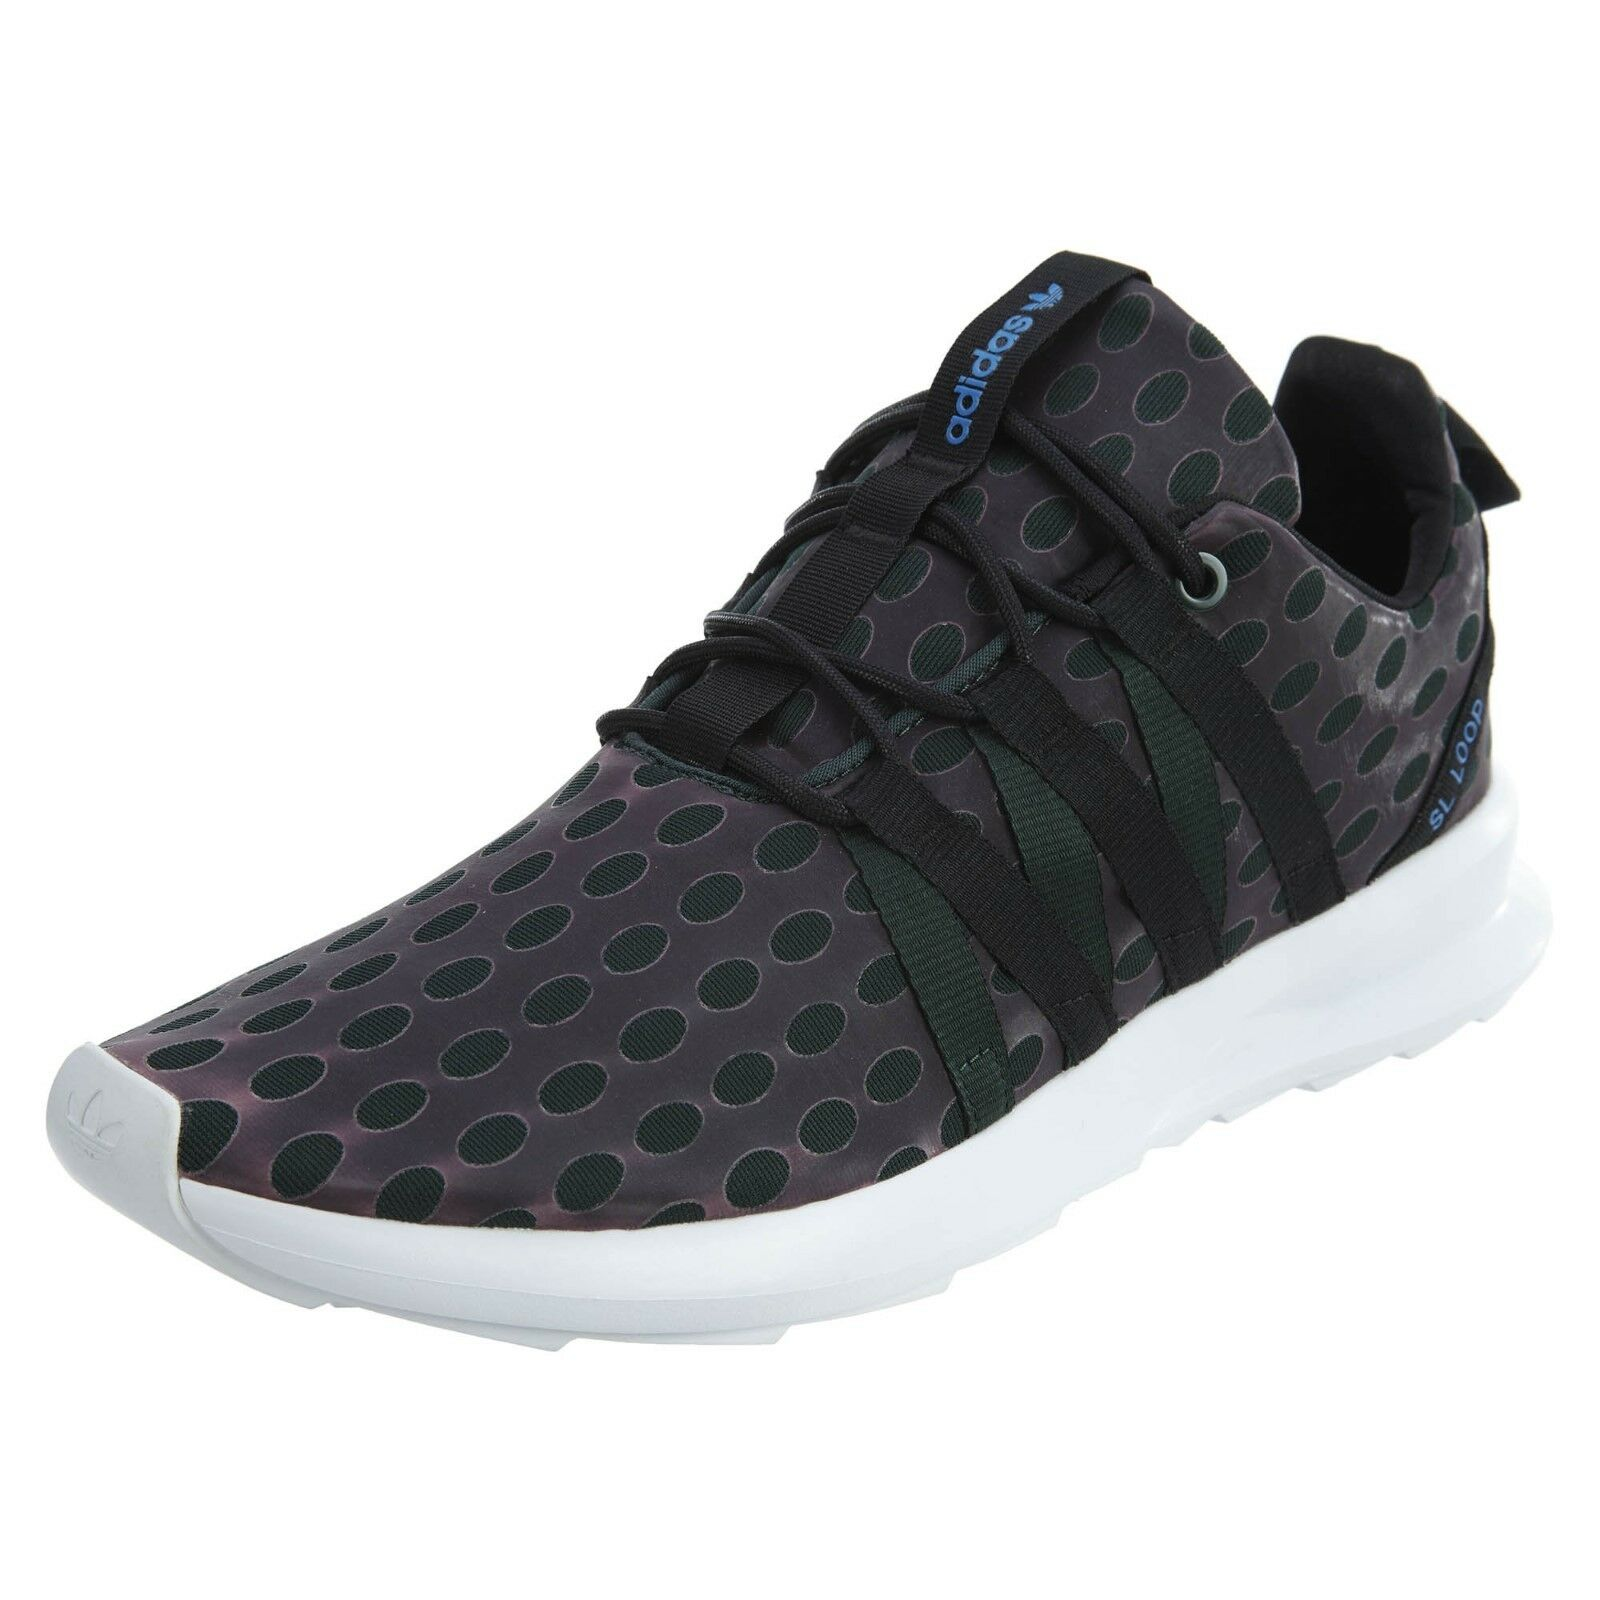 e942a85c5f681 ADIDAS SL LOOP LOOP LOOP CT Originals MENS S85234 NEW ce39e4 - mixed ...